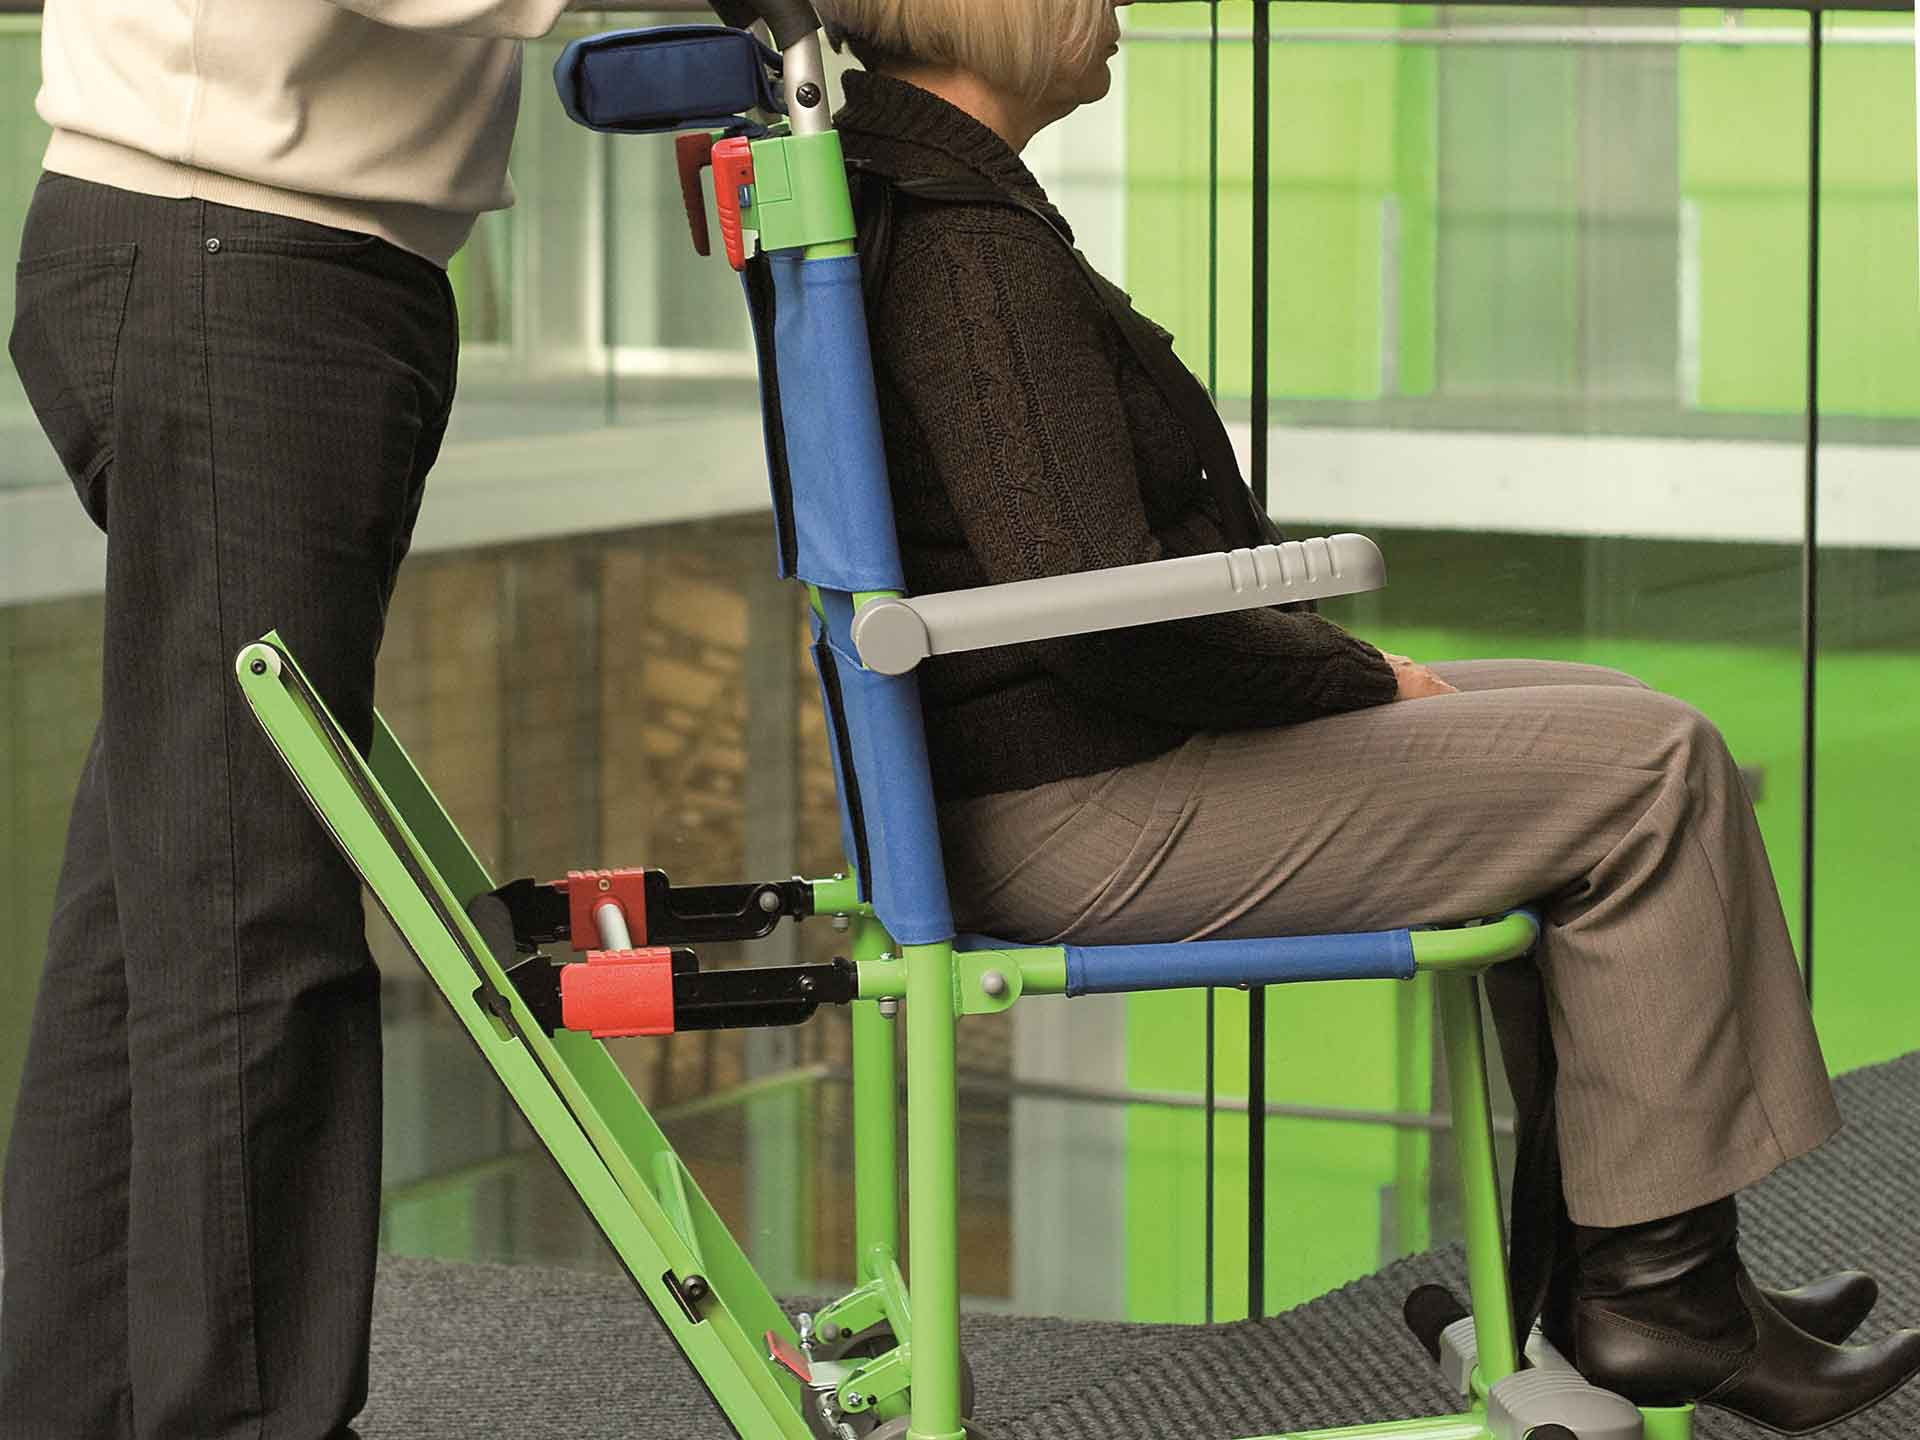 Disabled evacuation chair hire service